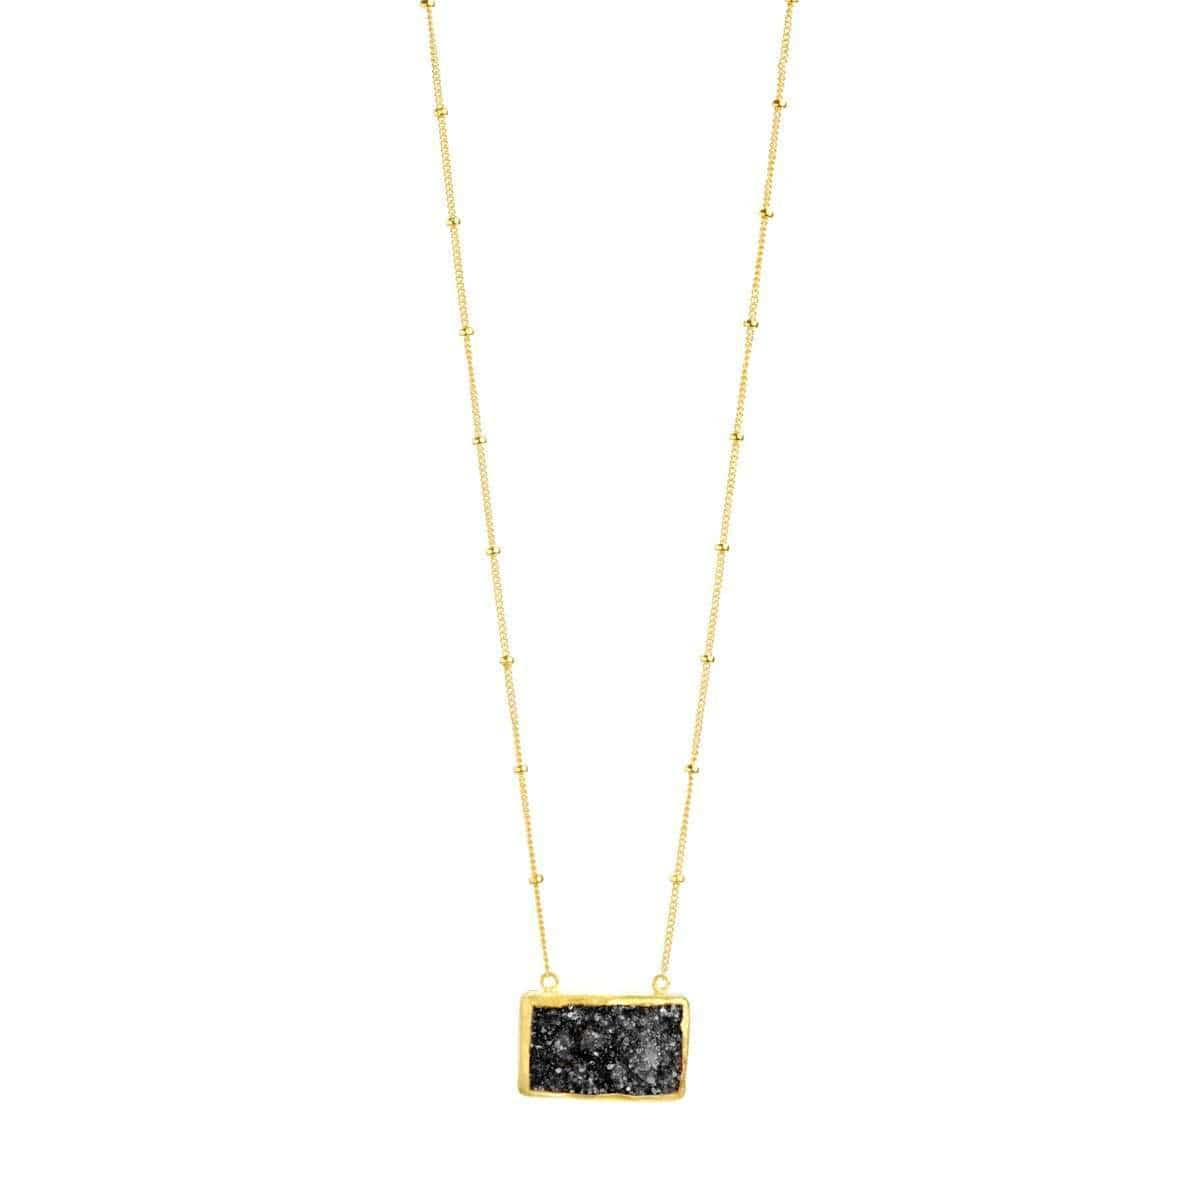 Nirvana 22k Gold Plated Black Druzy Necklace - G7012N-Nina Nguyen-Renee Taylor Gallery